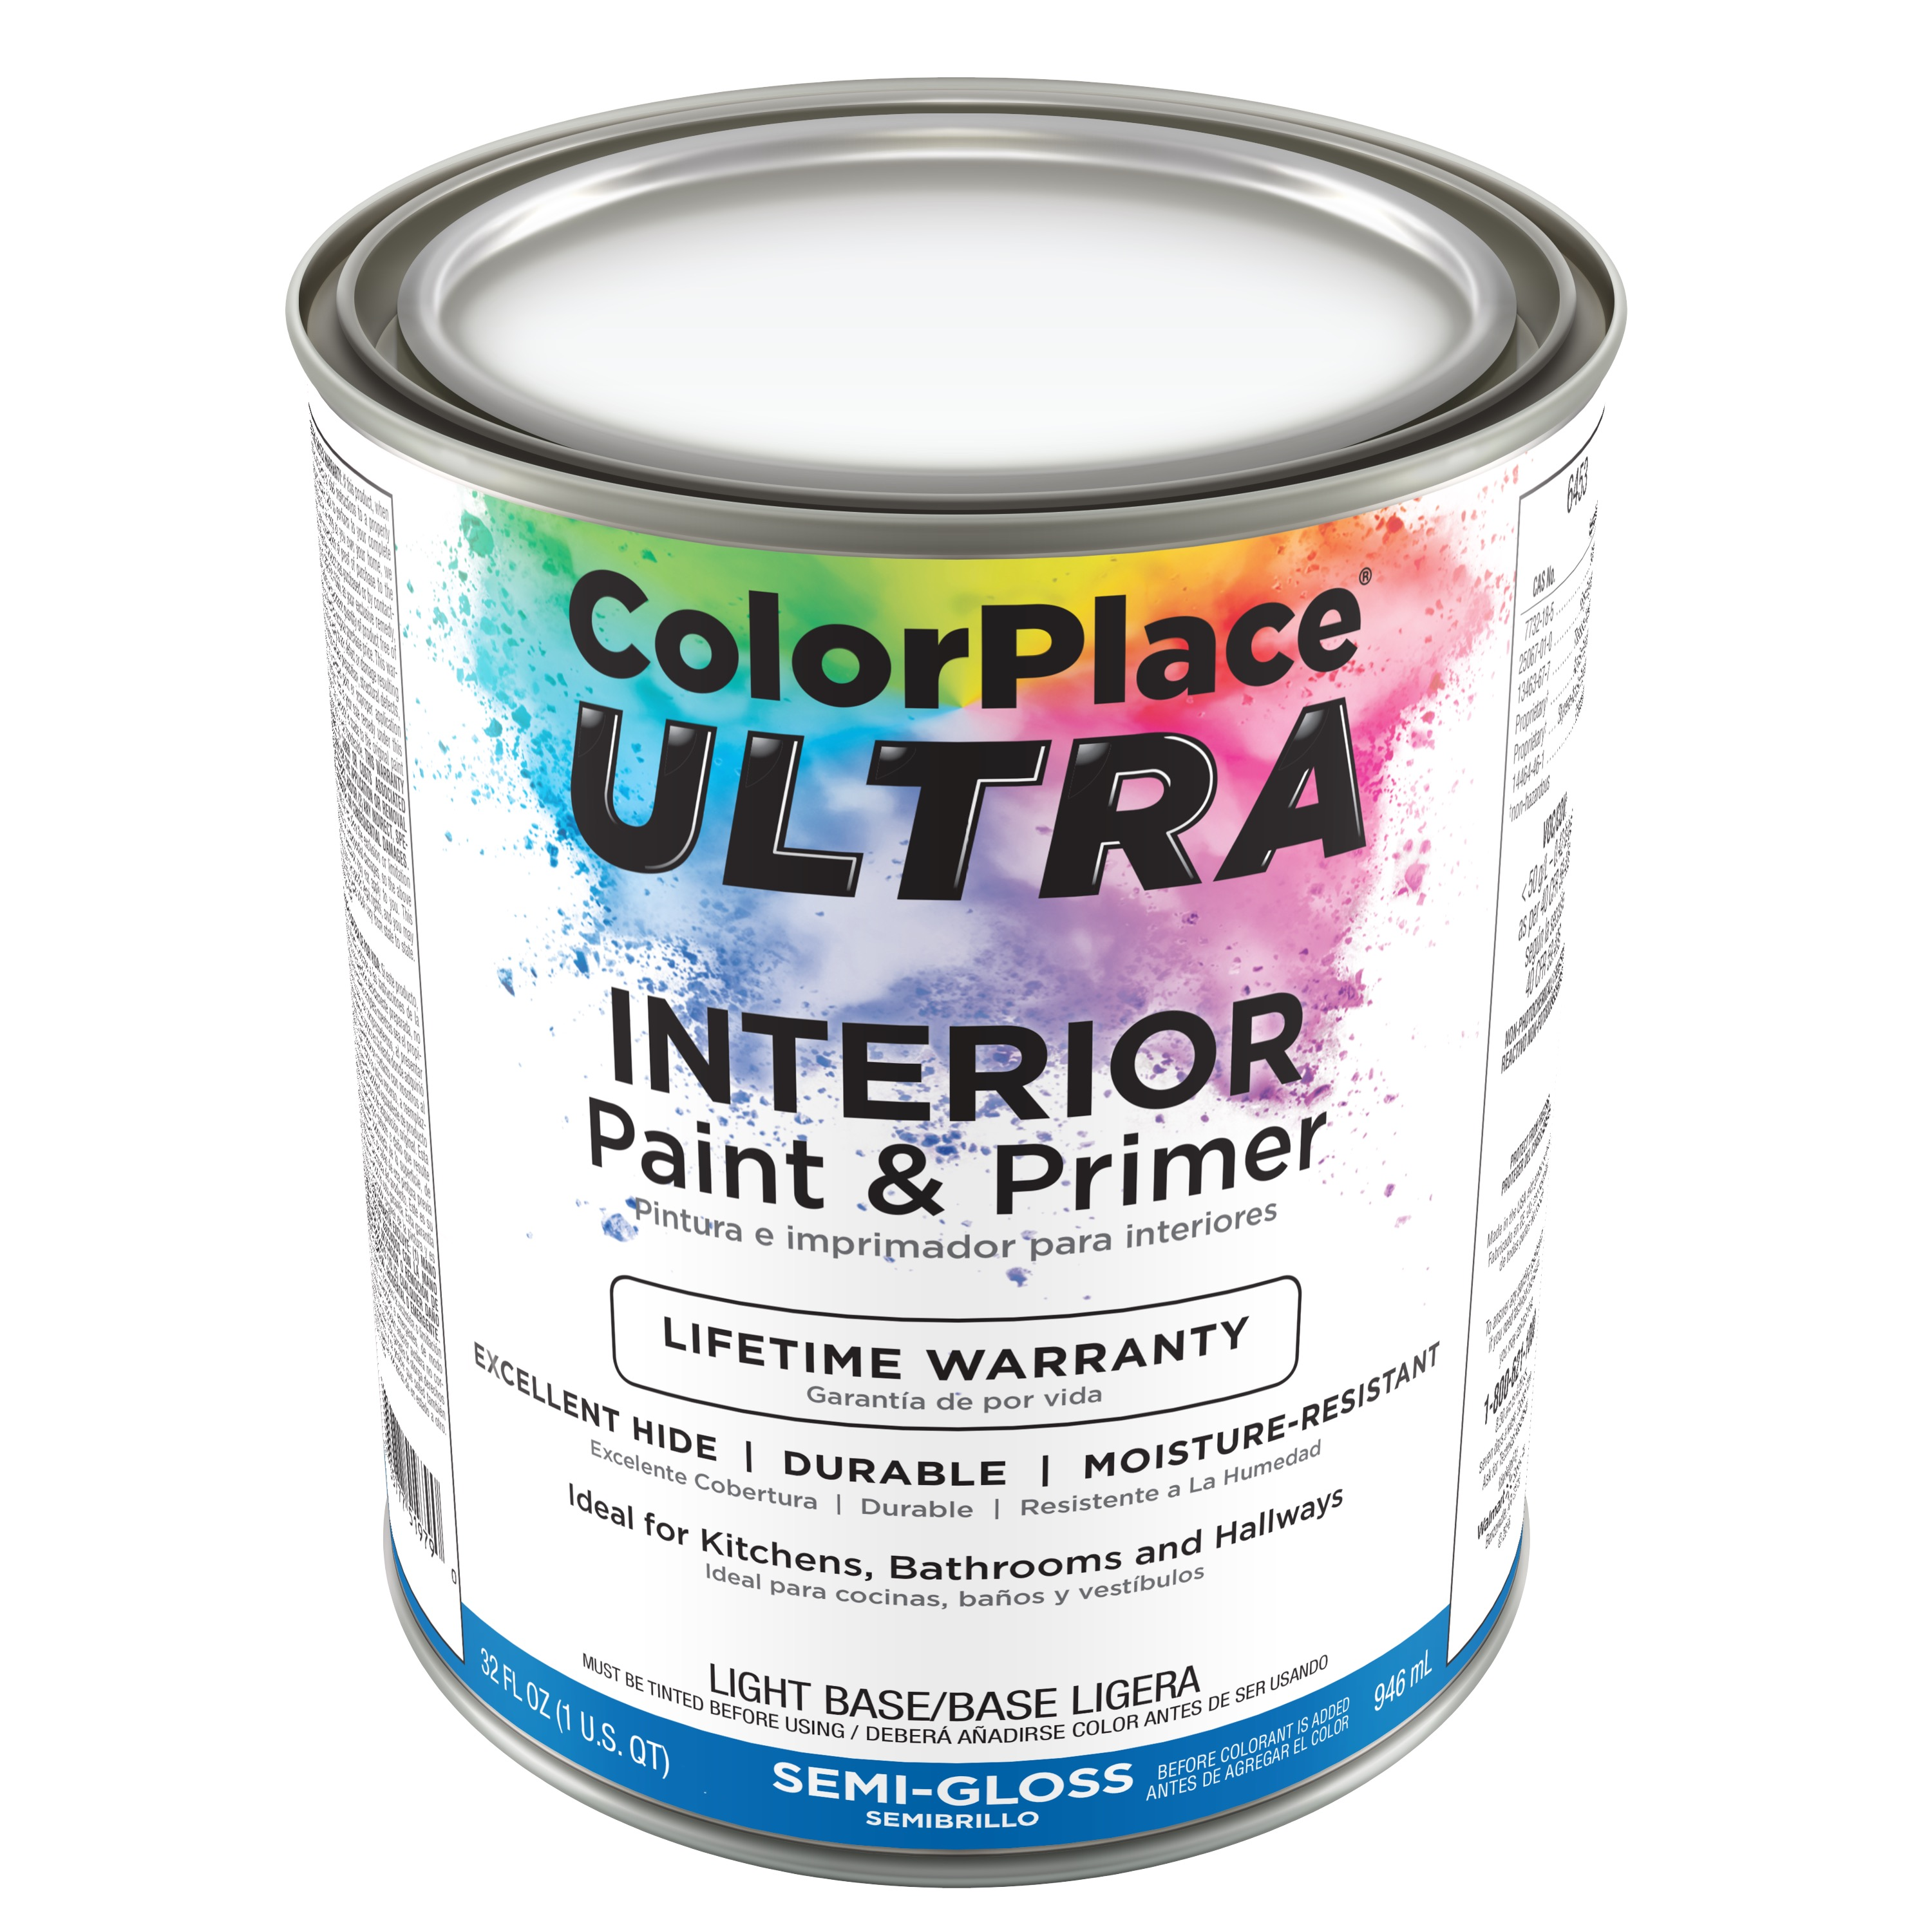 Color Place Ultra Semi-Gloss Interior Paint & Primer Light Base, 1-Qt